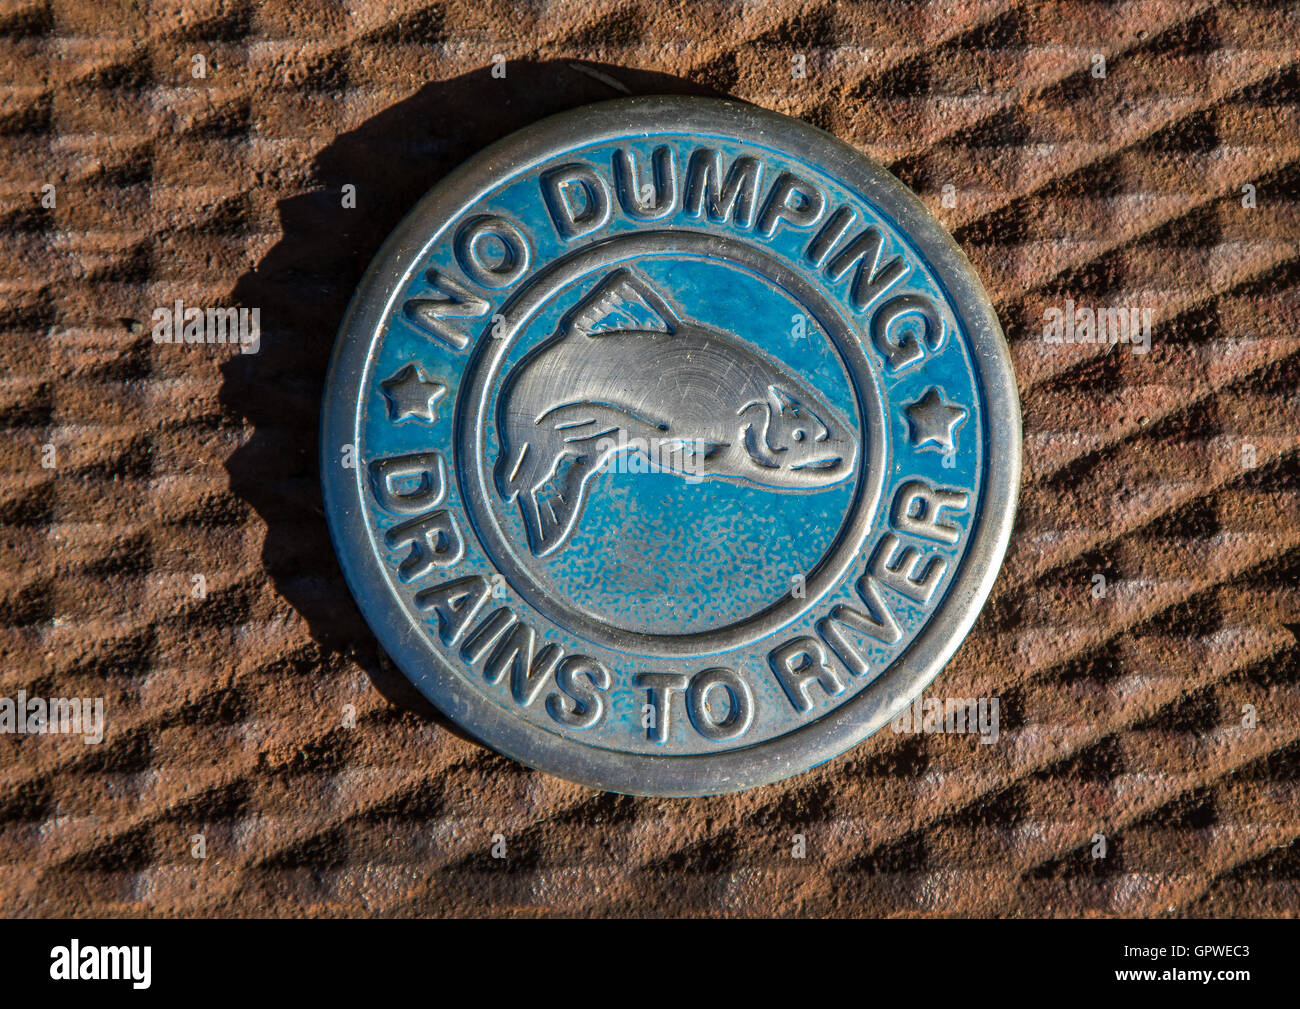 An elaborate 'No Dumping' sign on a drain depicting a fish. - Stock Image